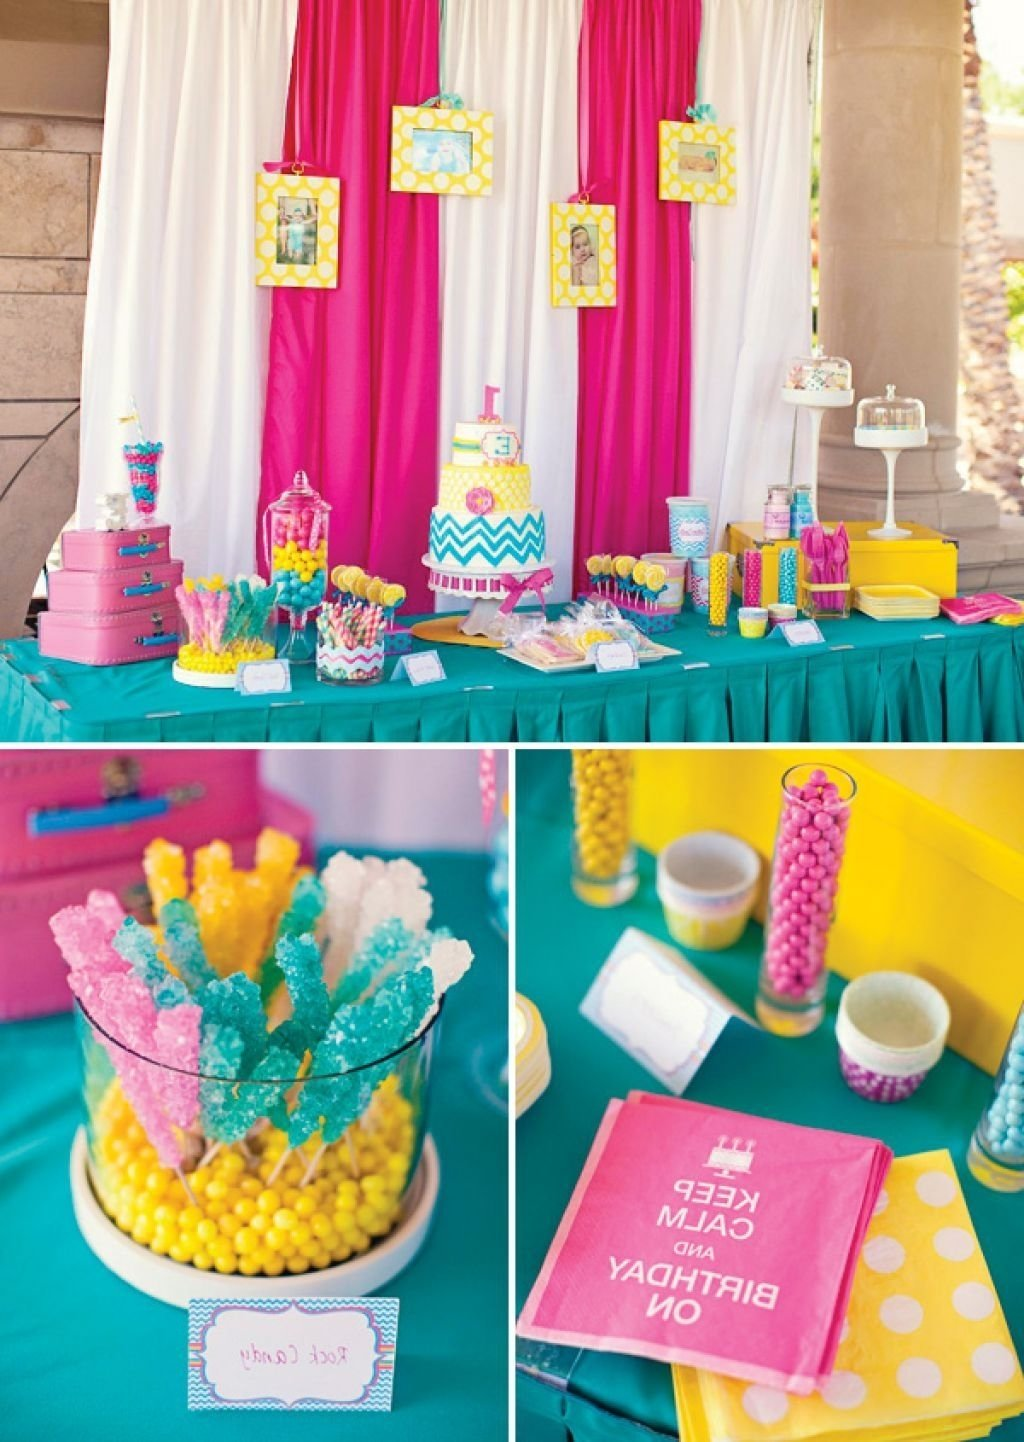 10 Attractive Birthday Party Ideas For 8 Year Old Girl outdoor party decorations google search madeline pinterest 24 2021